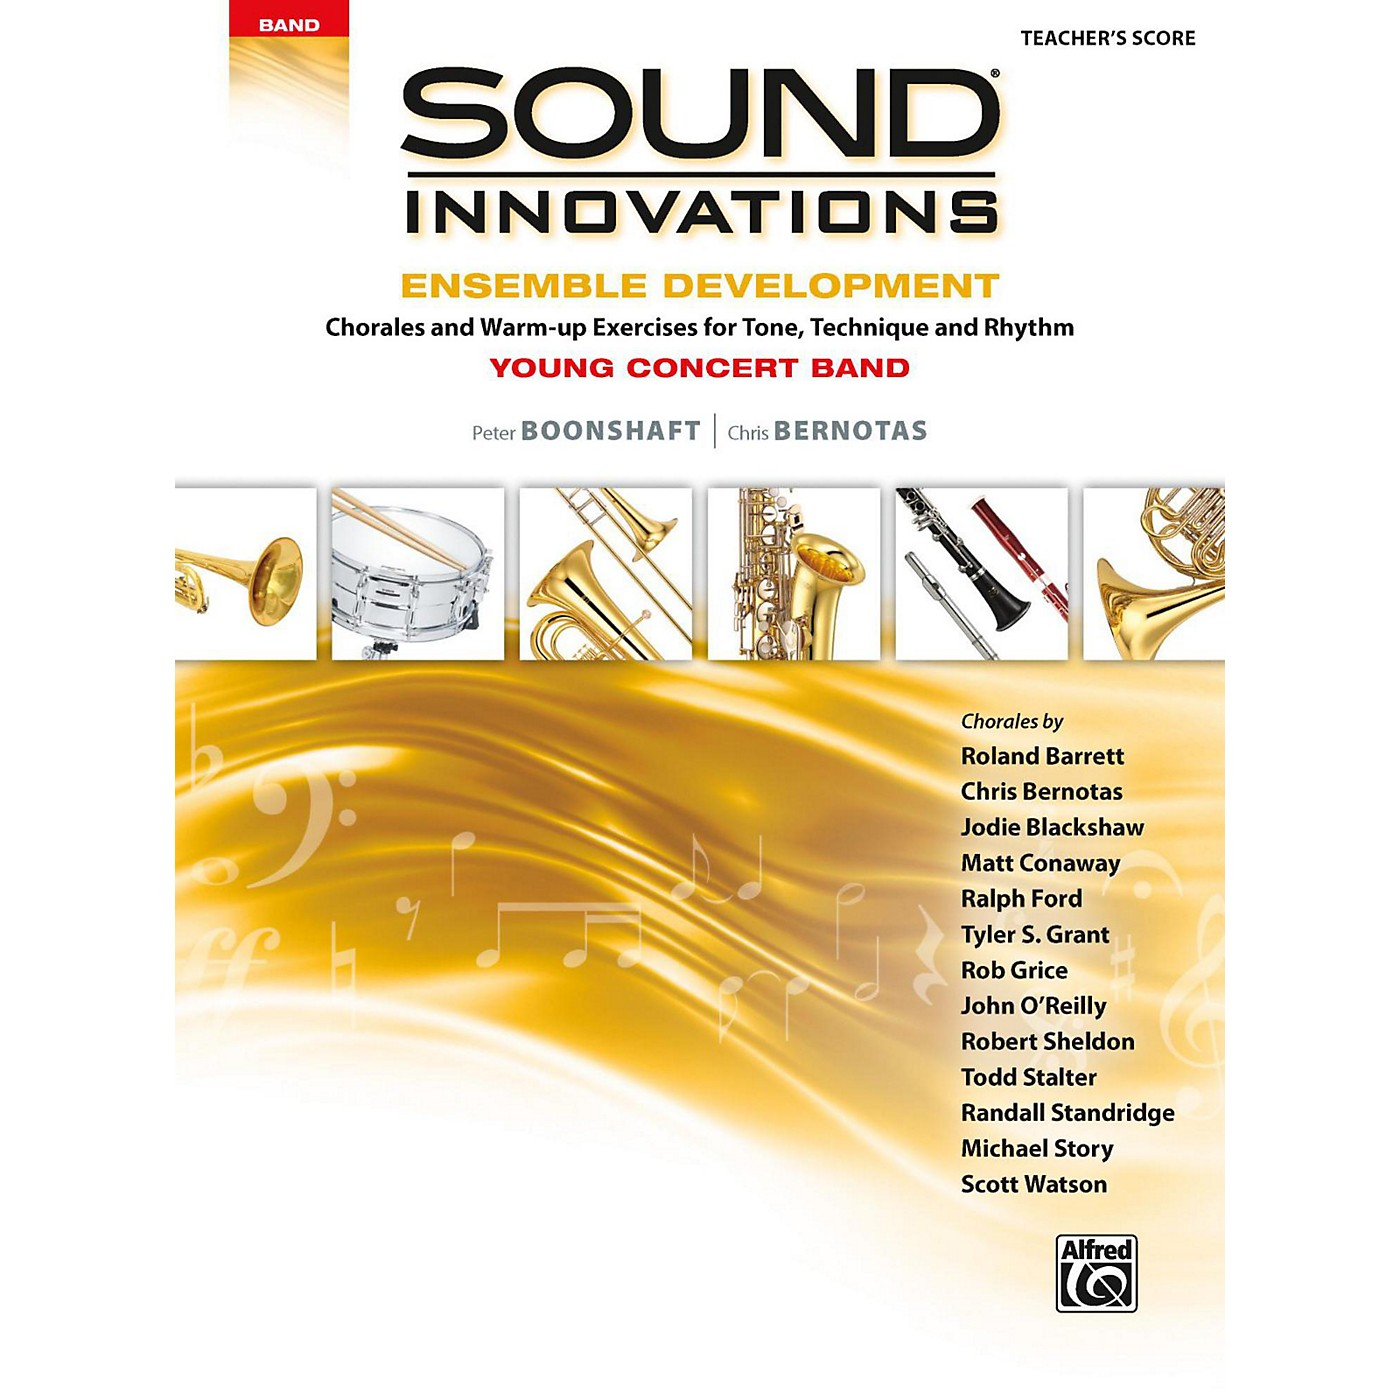 Alfred Sound Innovations for Concert Band: Ensemble Development for Young Concert Band Conductor's Score thumbnail